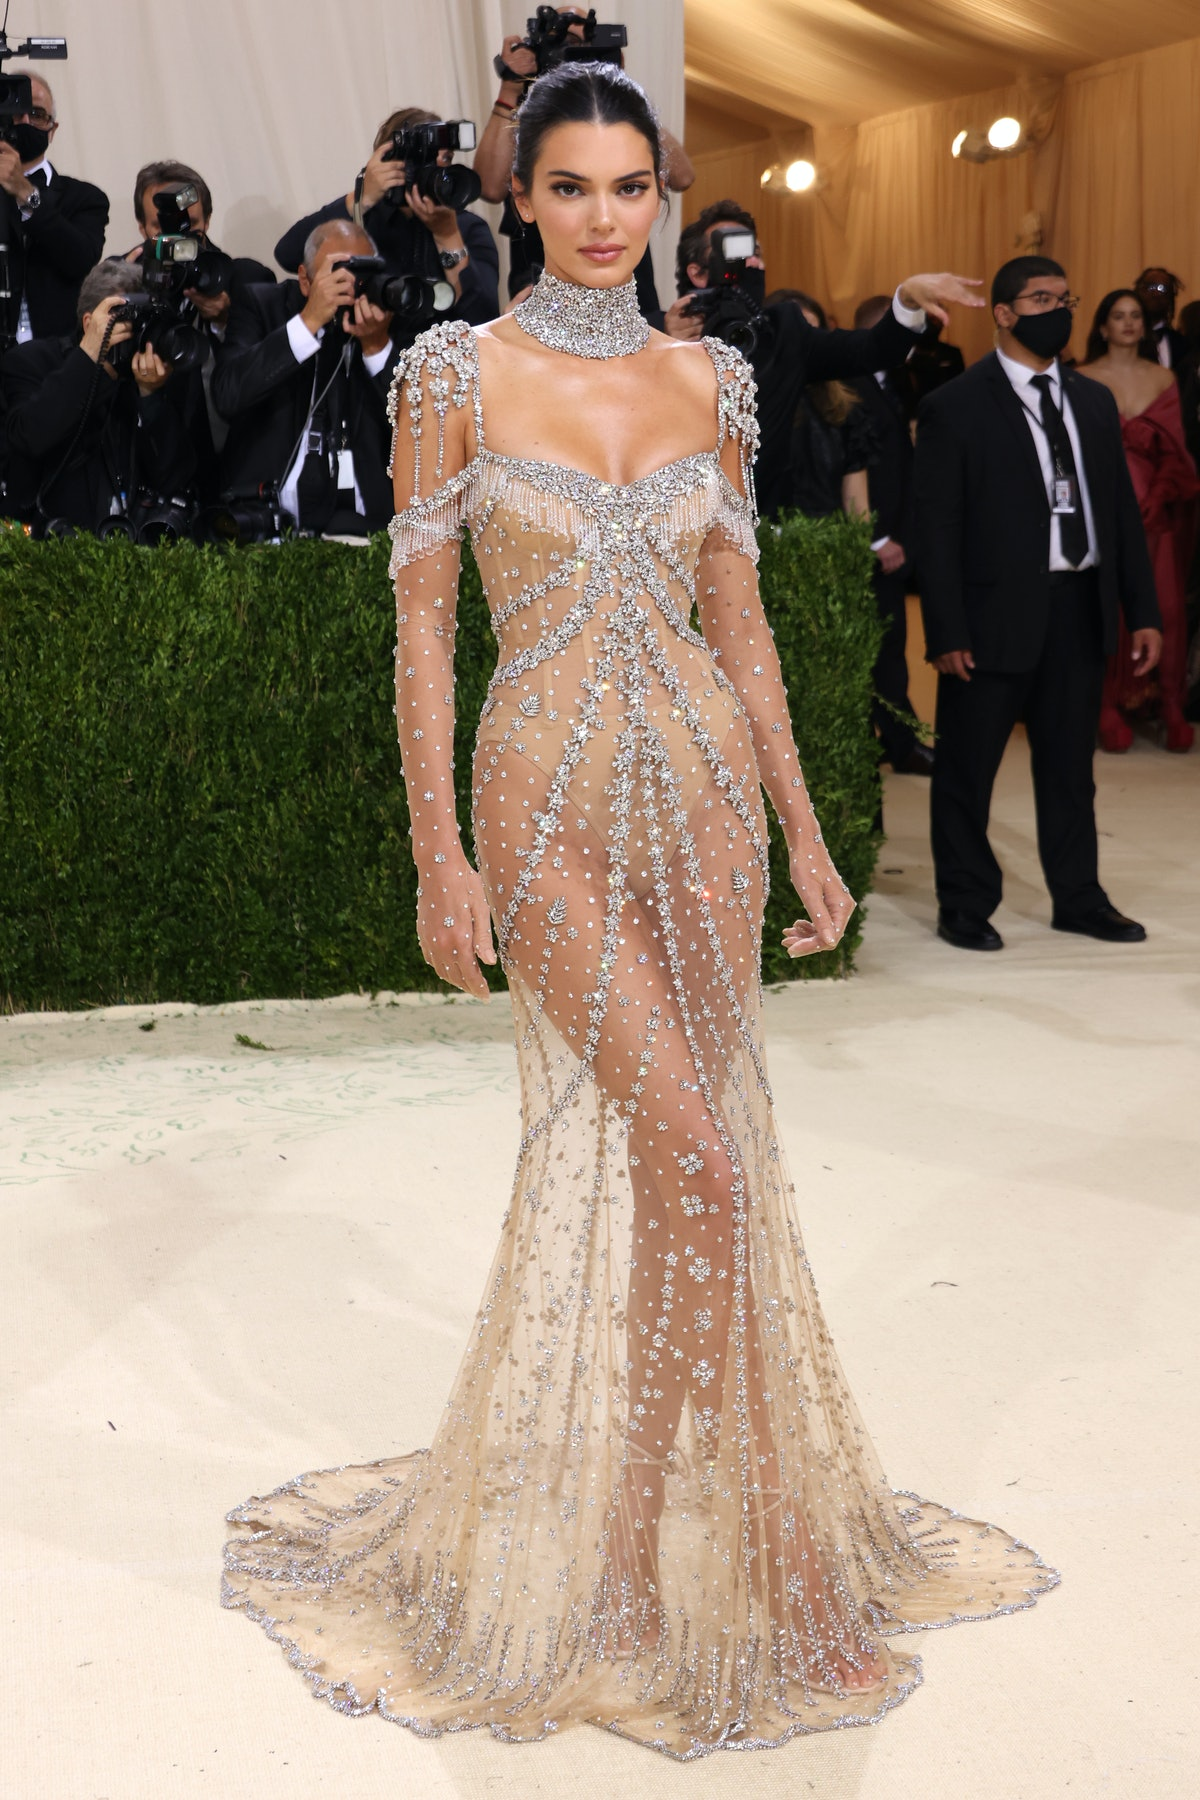 Kendall Jenner attends The 2021 Met Gala Celebrating In America: A Lexicon Of Fashion at Metropolit...